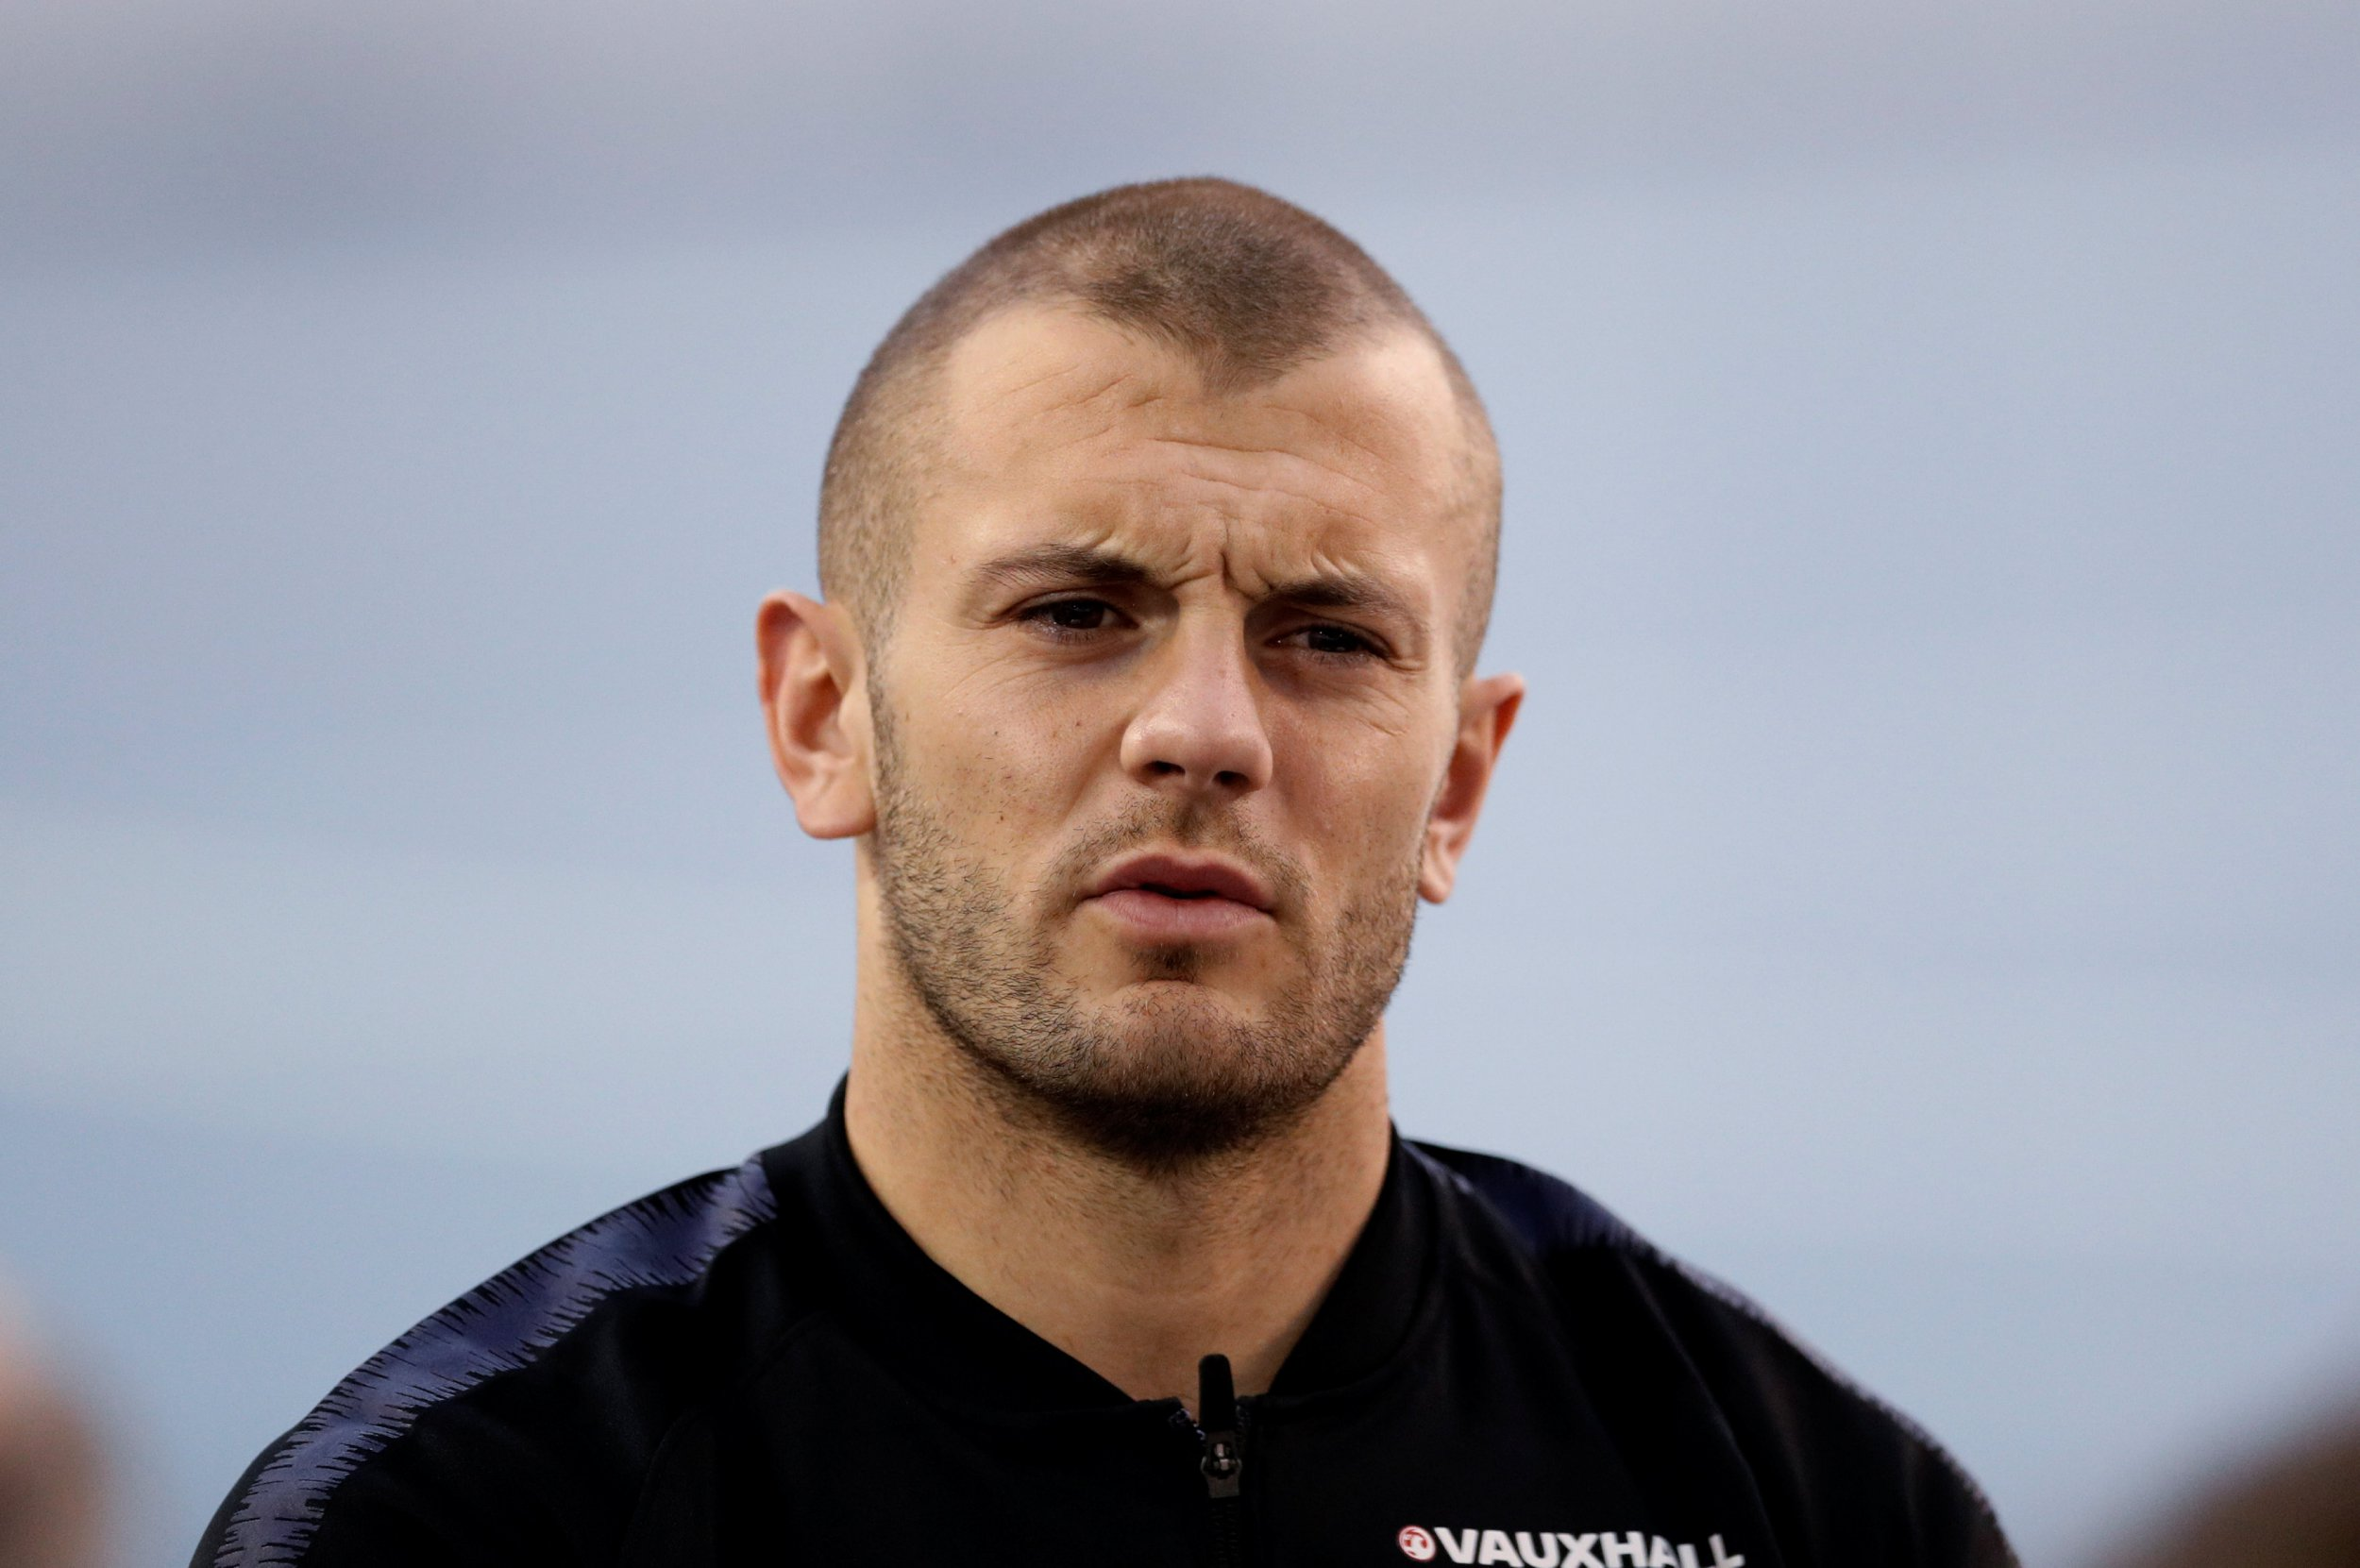 Soccer Football - England Media Day - St. George???s Park, Burton Upon Trent, Britain - March 20, 2018 England's Jack Wilshere during the media day Action Images via Reuters/Andrew Boyers